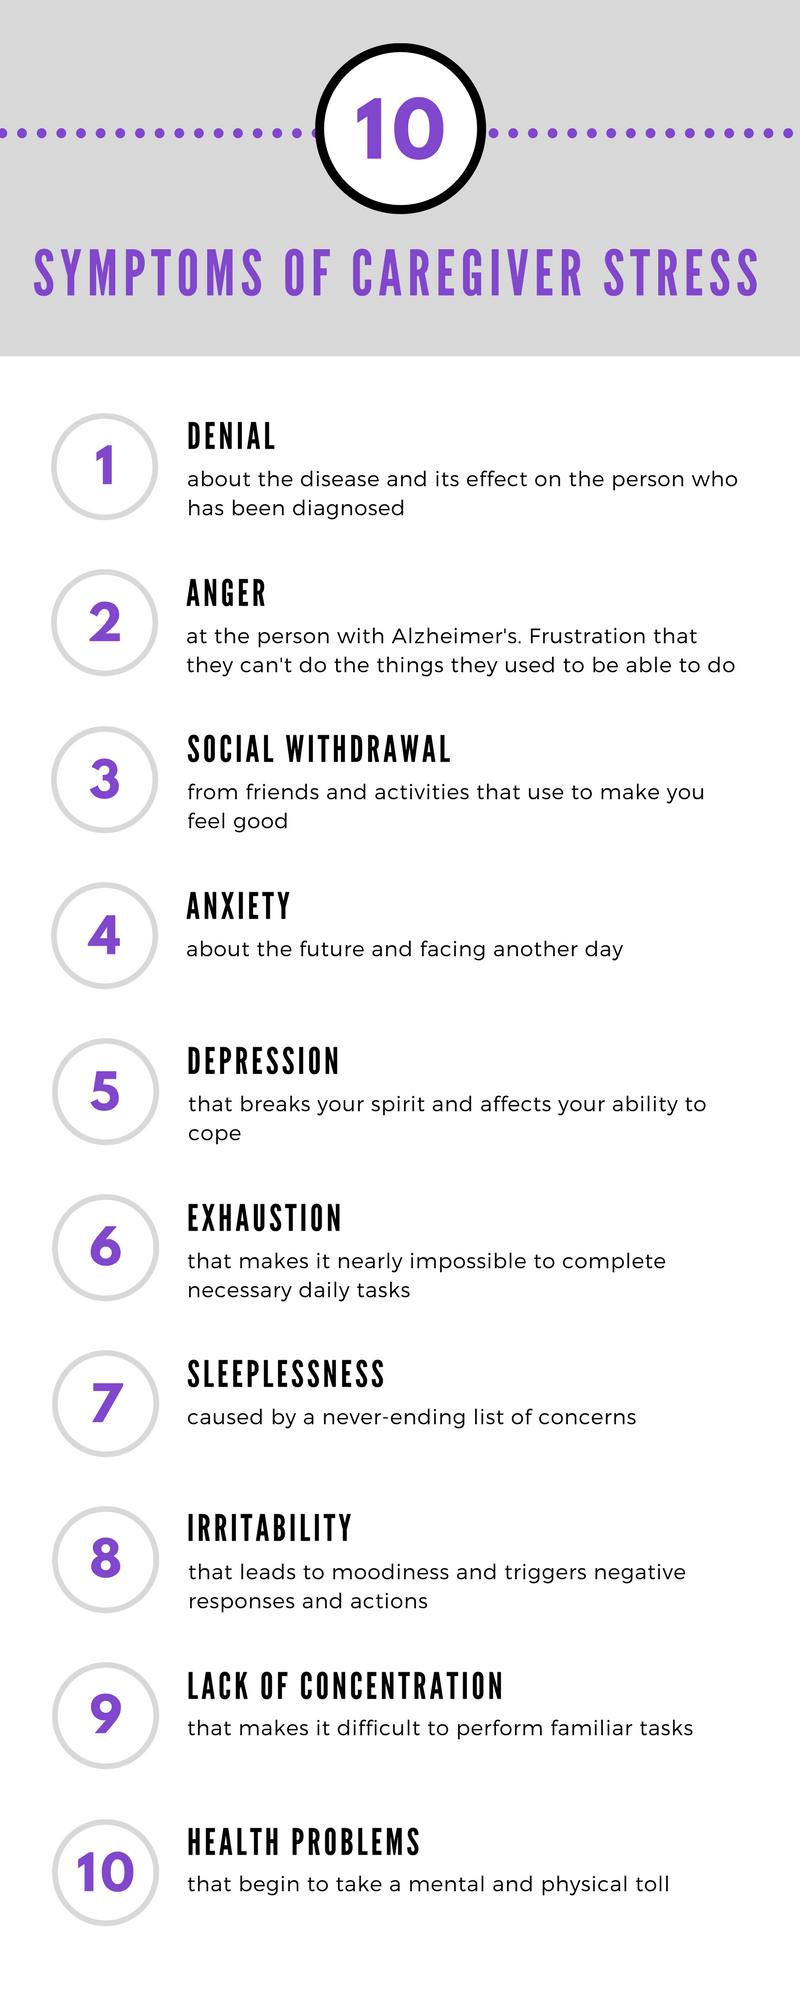 Infographic highlighting the 10 symptoms of caregiver stress